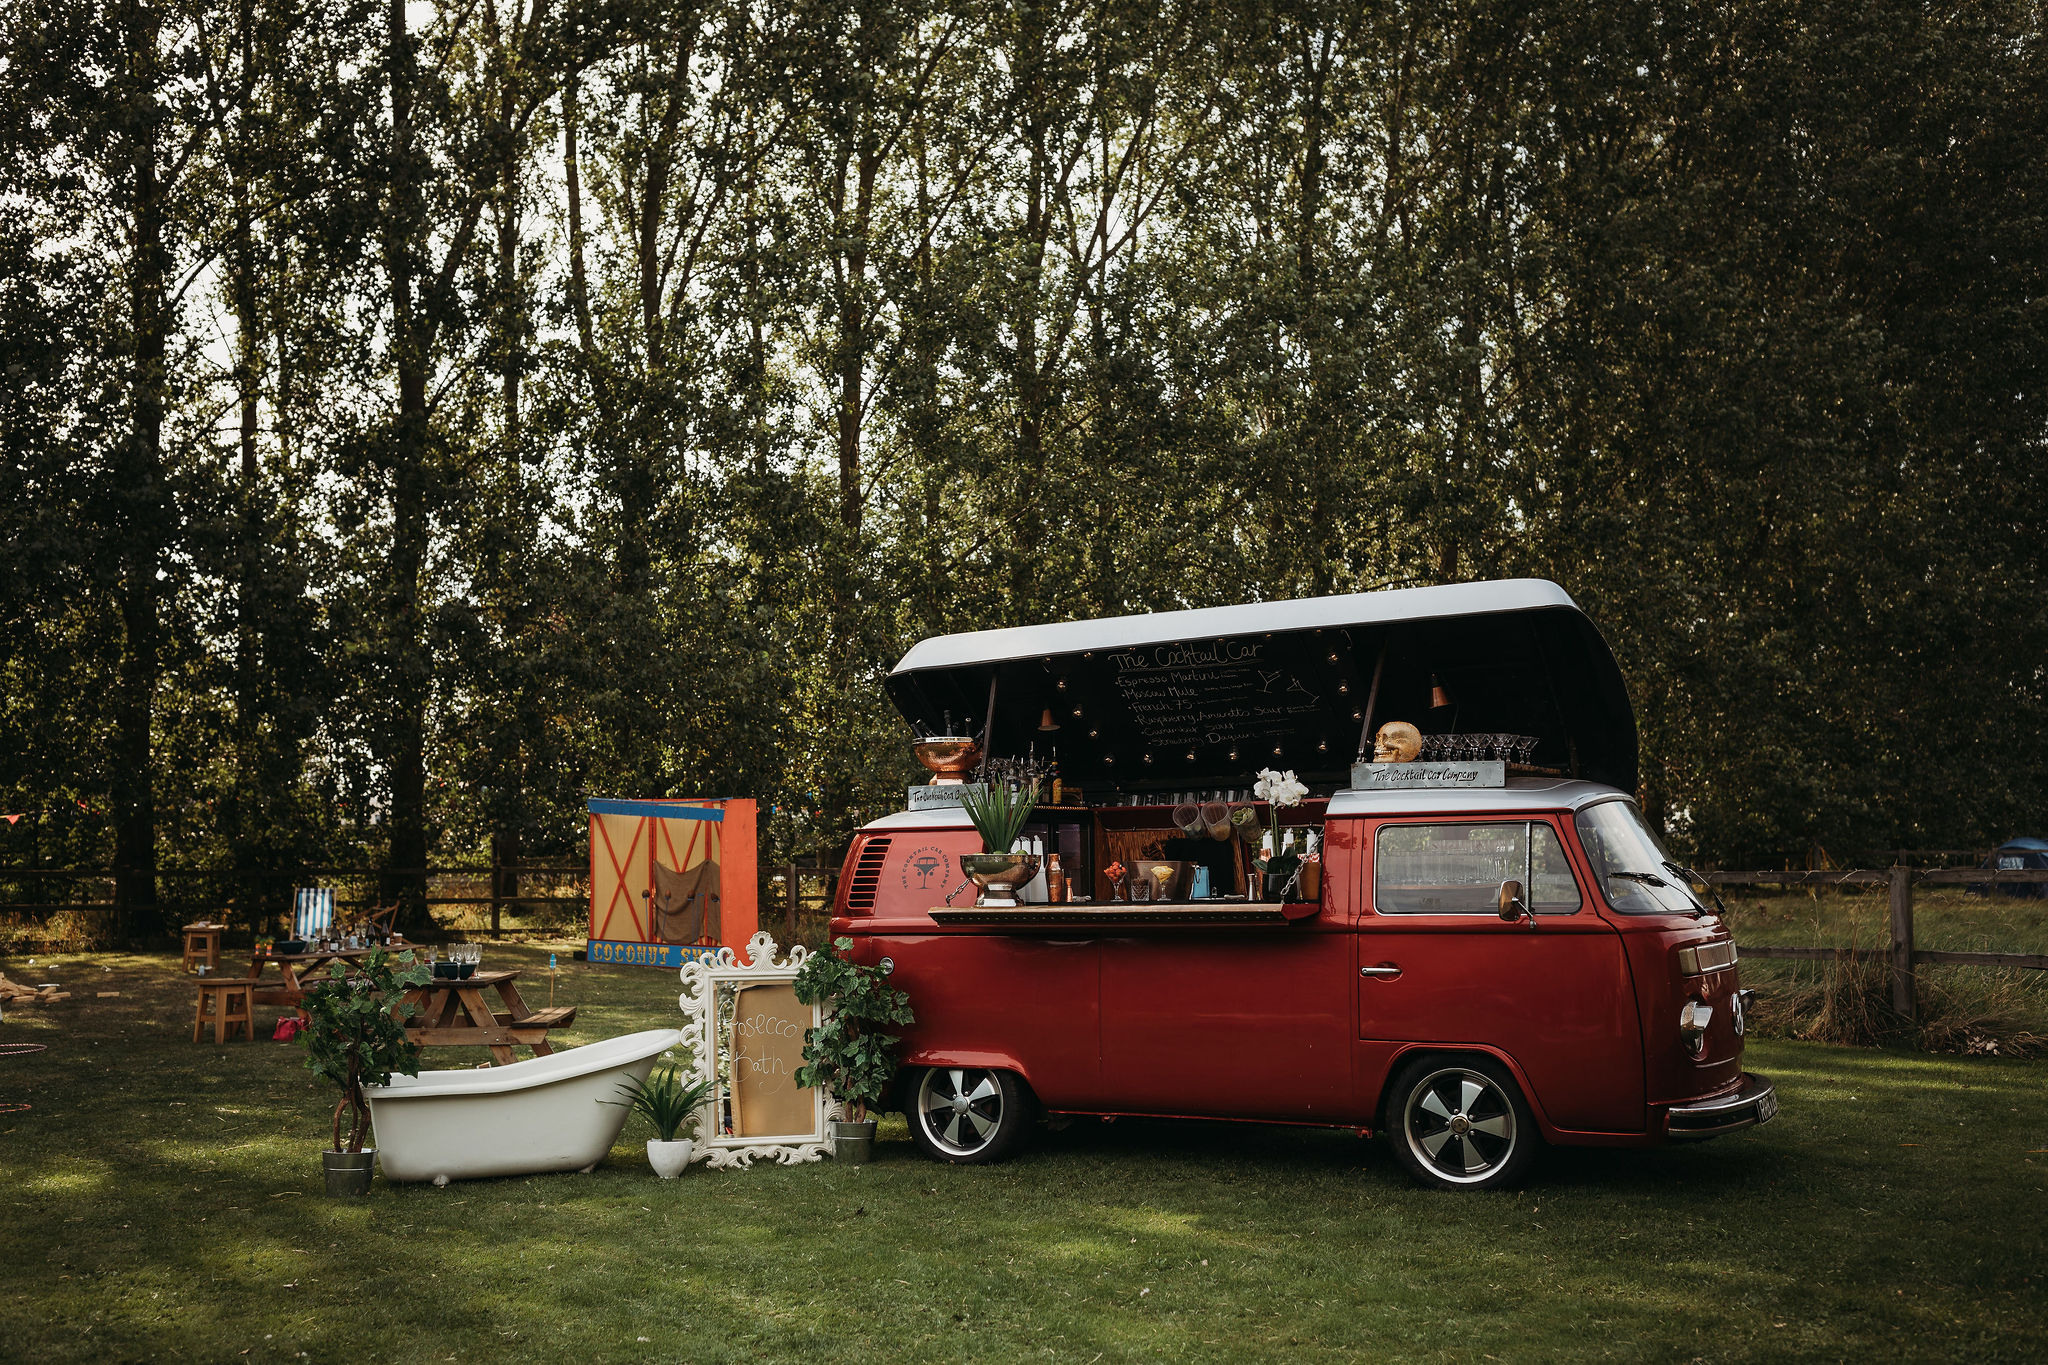 Camper van cocktail bar